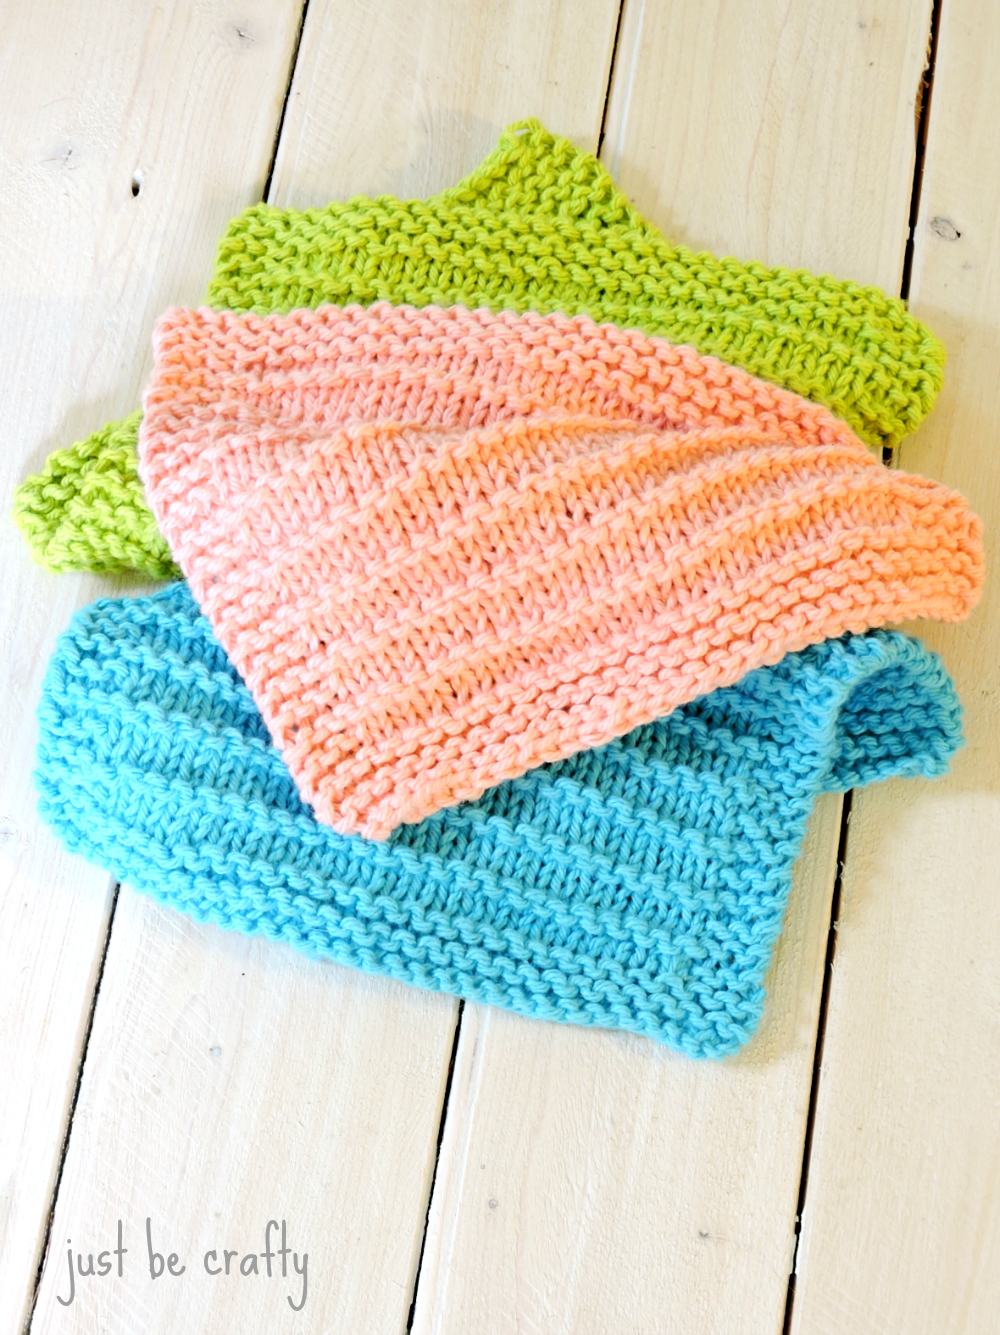 Easy Dishcloth Knit Pattern Farmhouse Kitchen Knitted Dishcloths Just Be Crafty